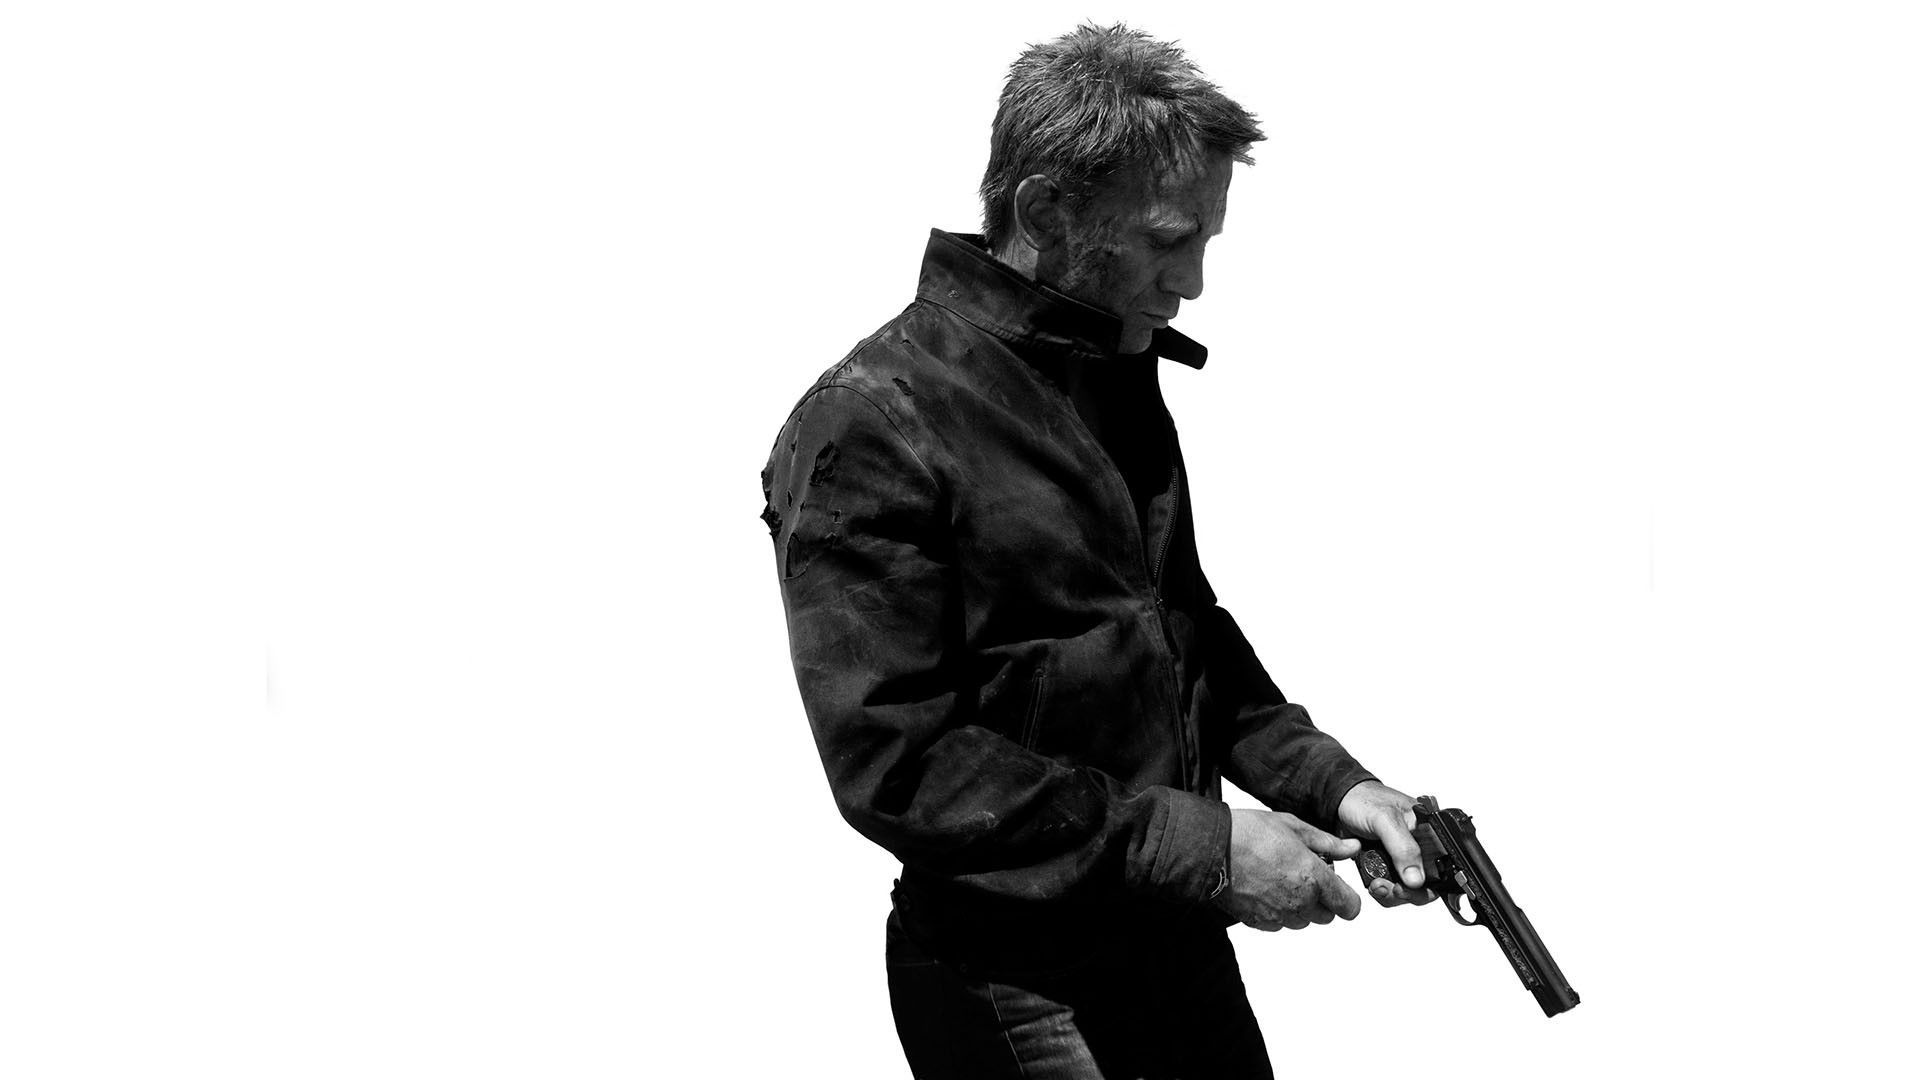 james bond wallpaper daniel craig - wallpapersafari